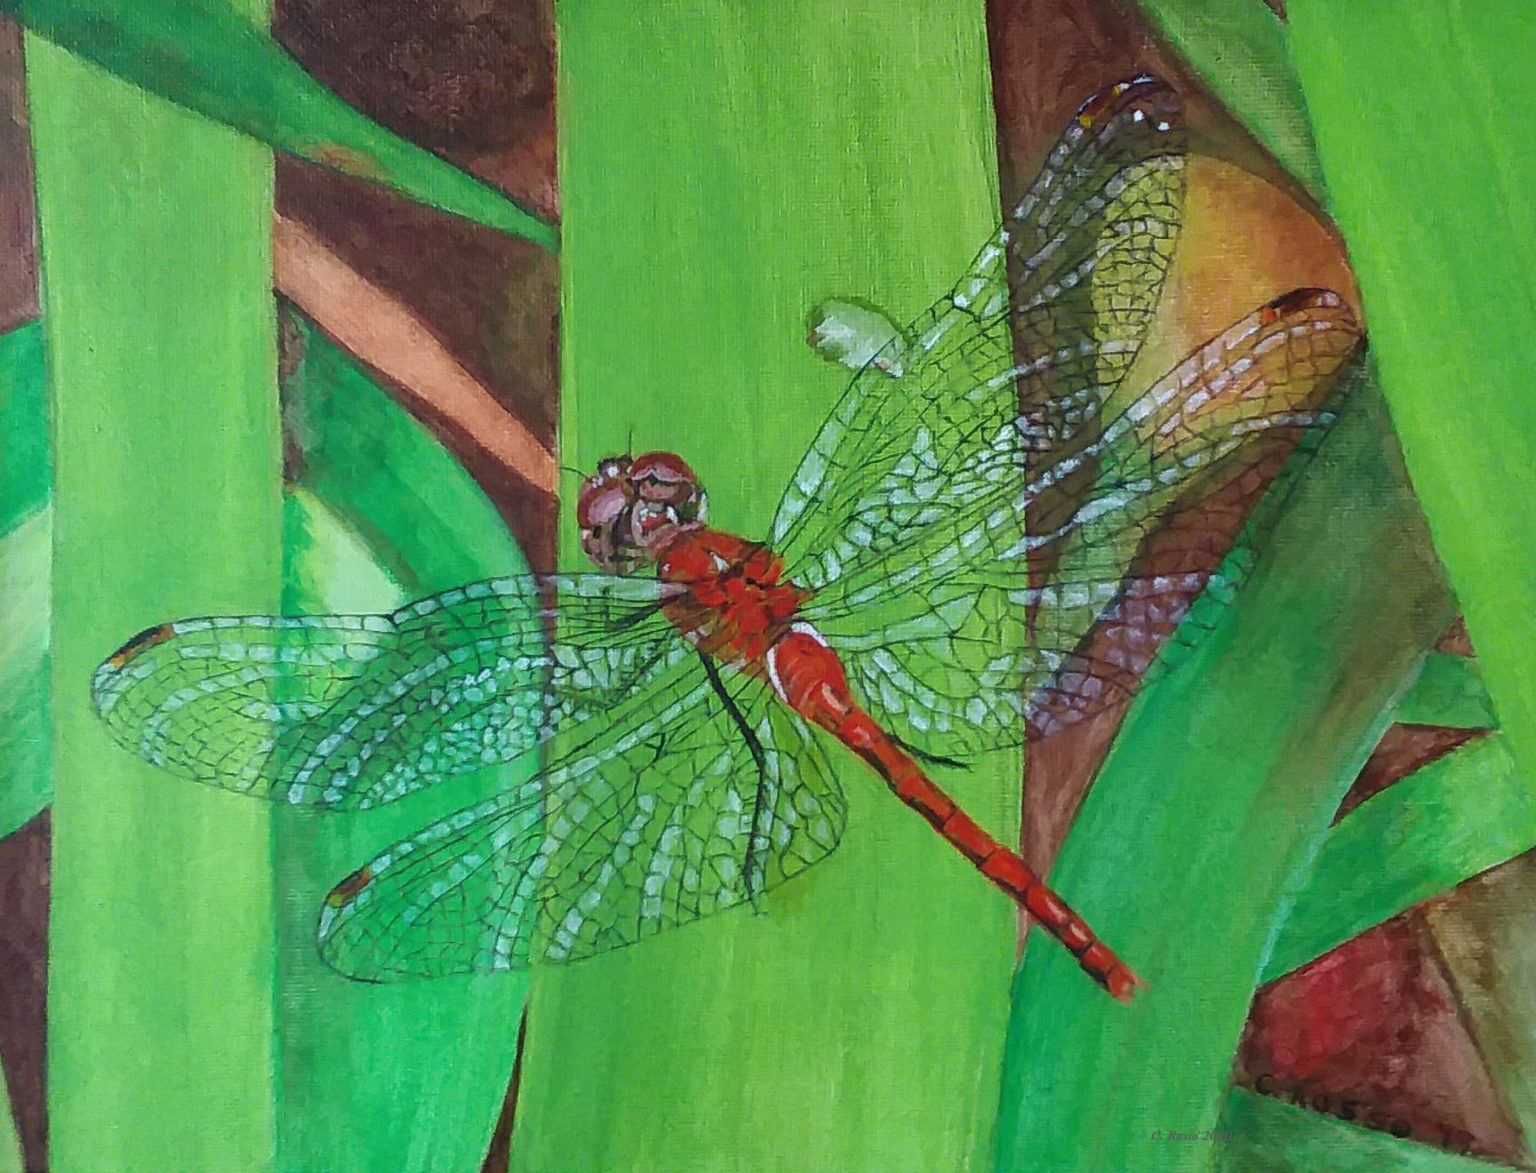 Dragonfly-Quilt-by Cynthia Rosso